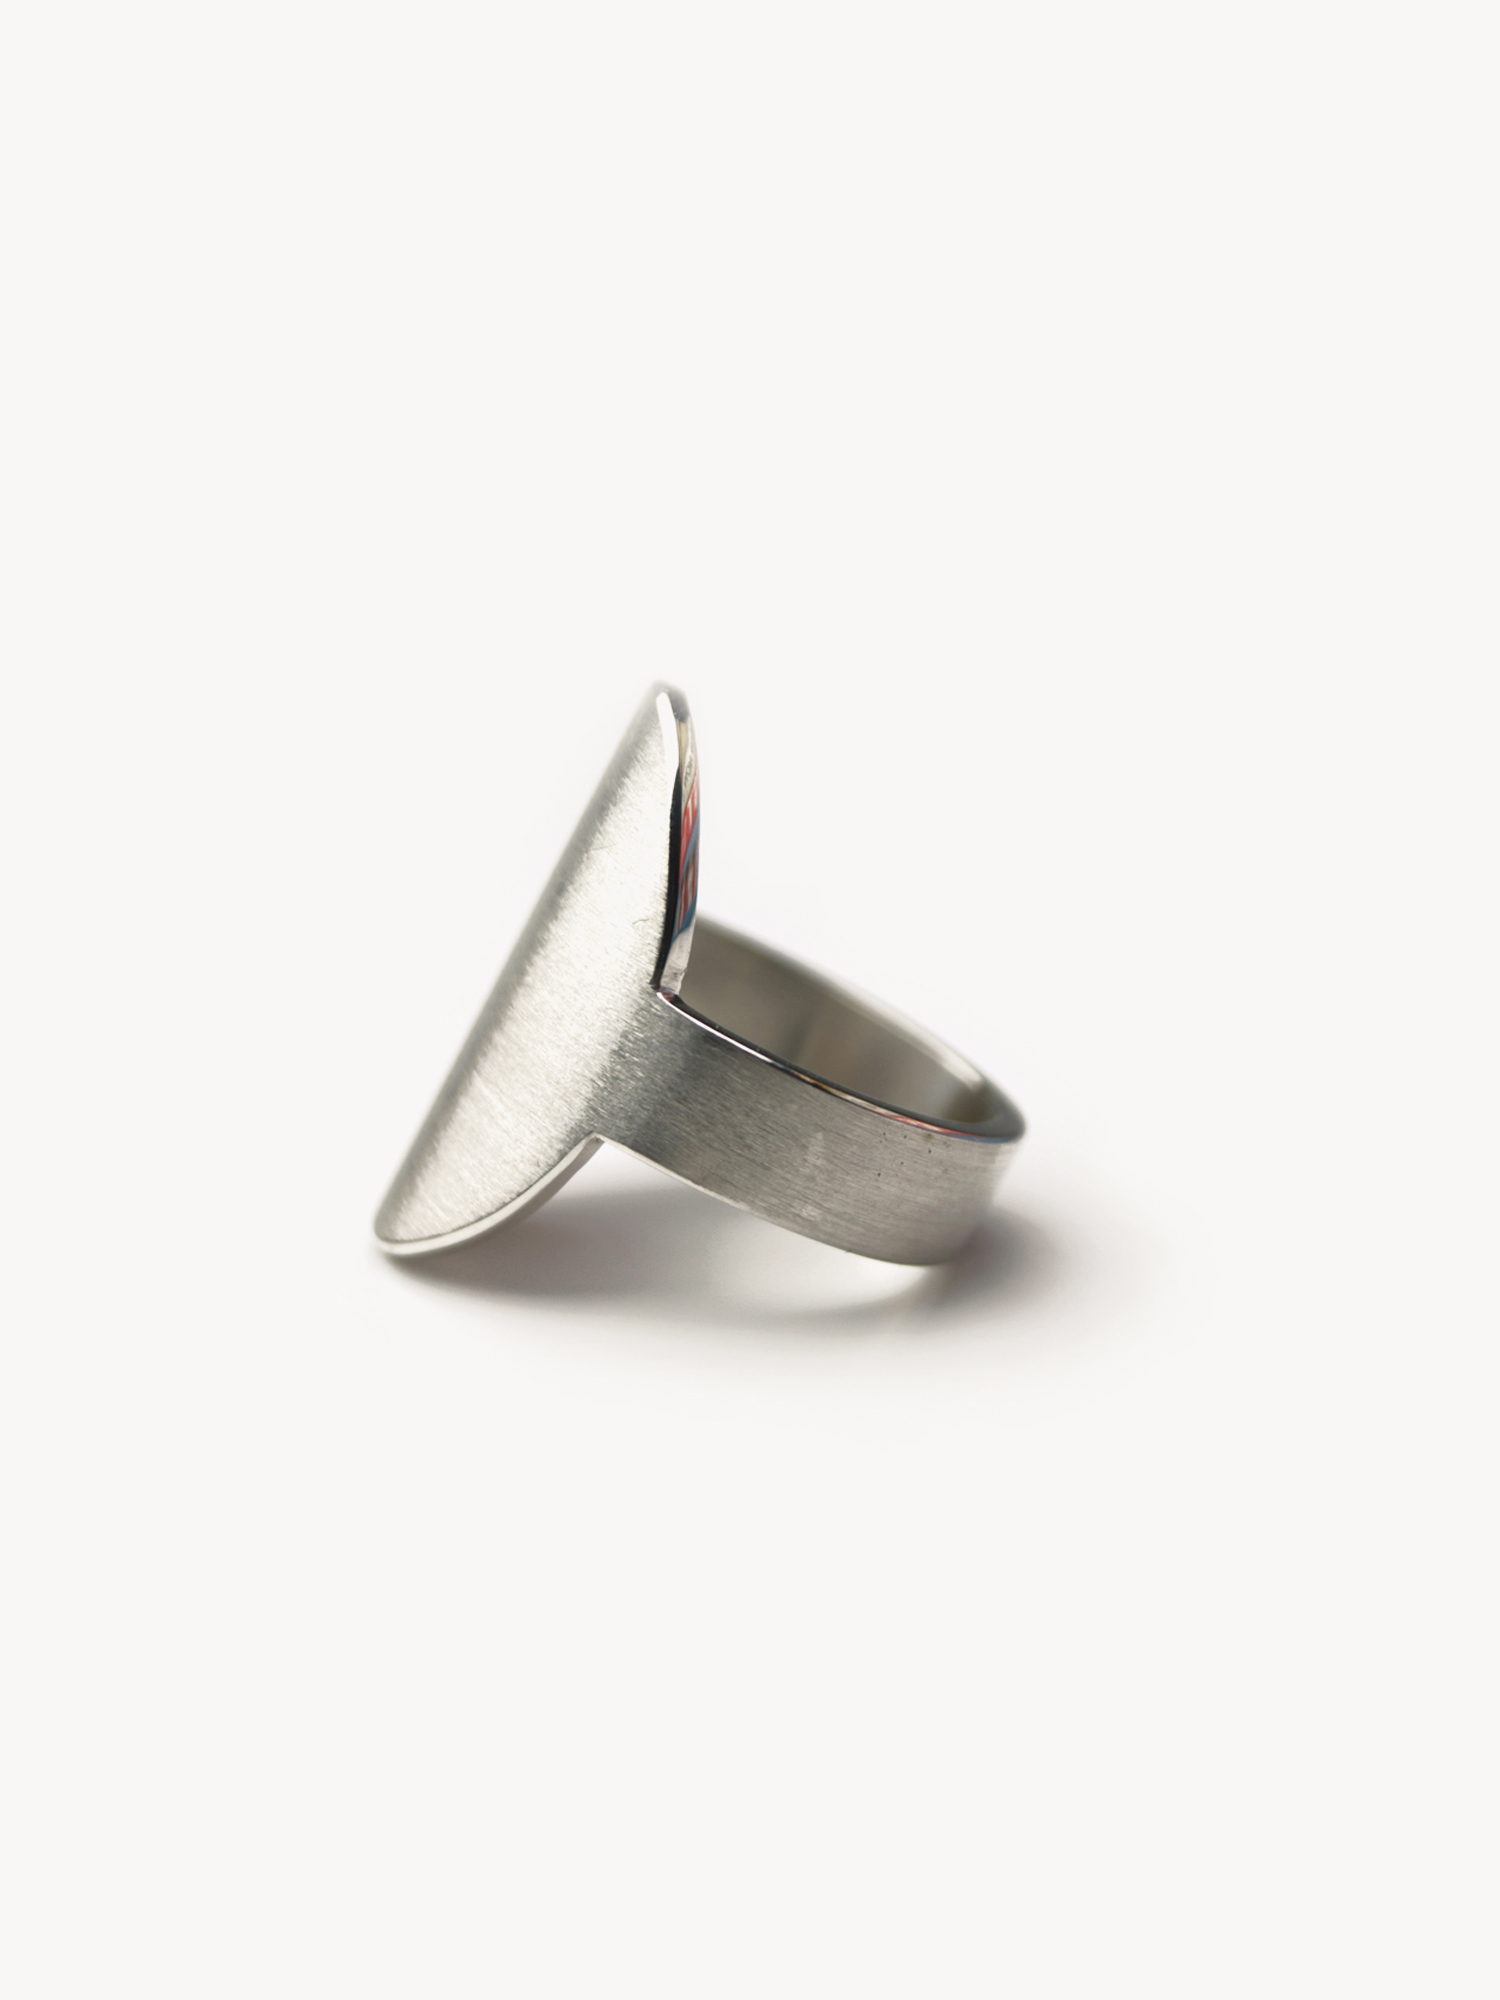 Siegelring Anda, hochoval groß in 925 Silber  Signet ring Anda, vertical oval big in sterling silver